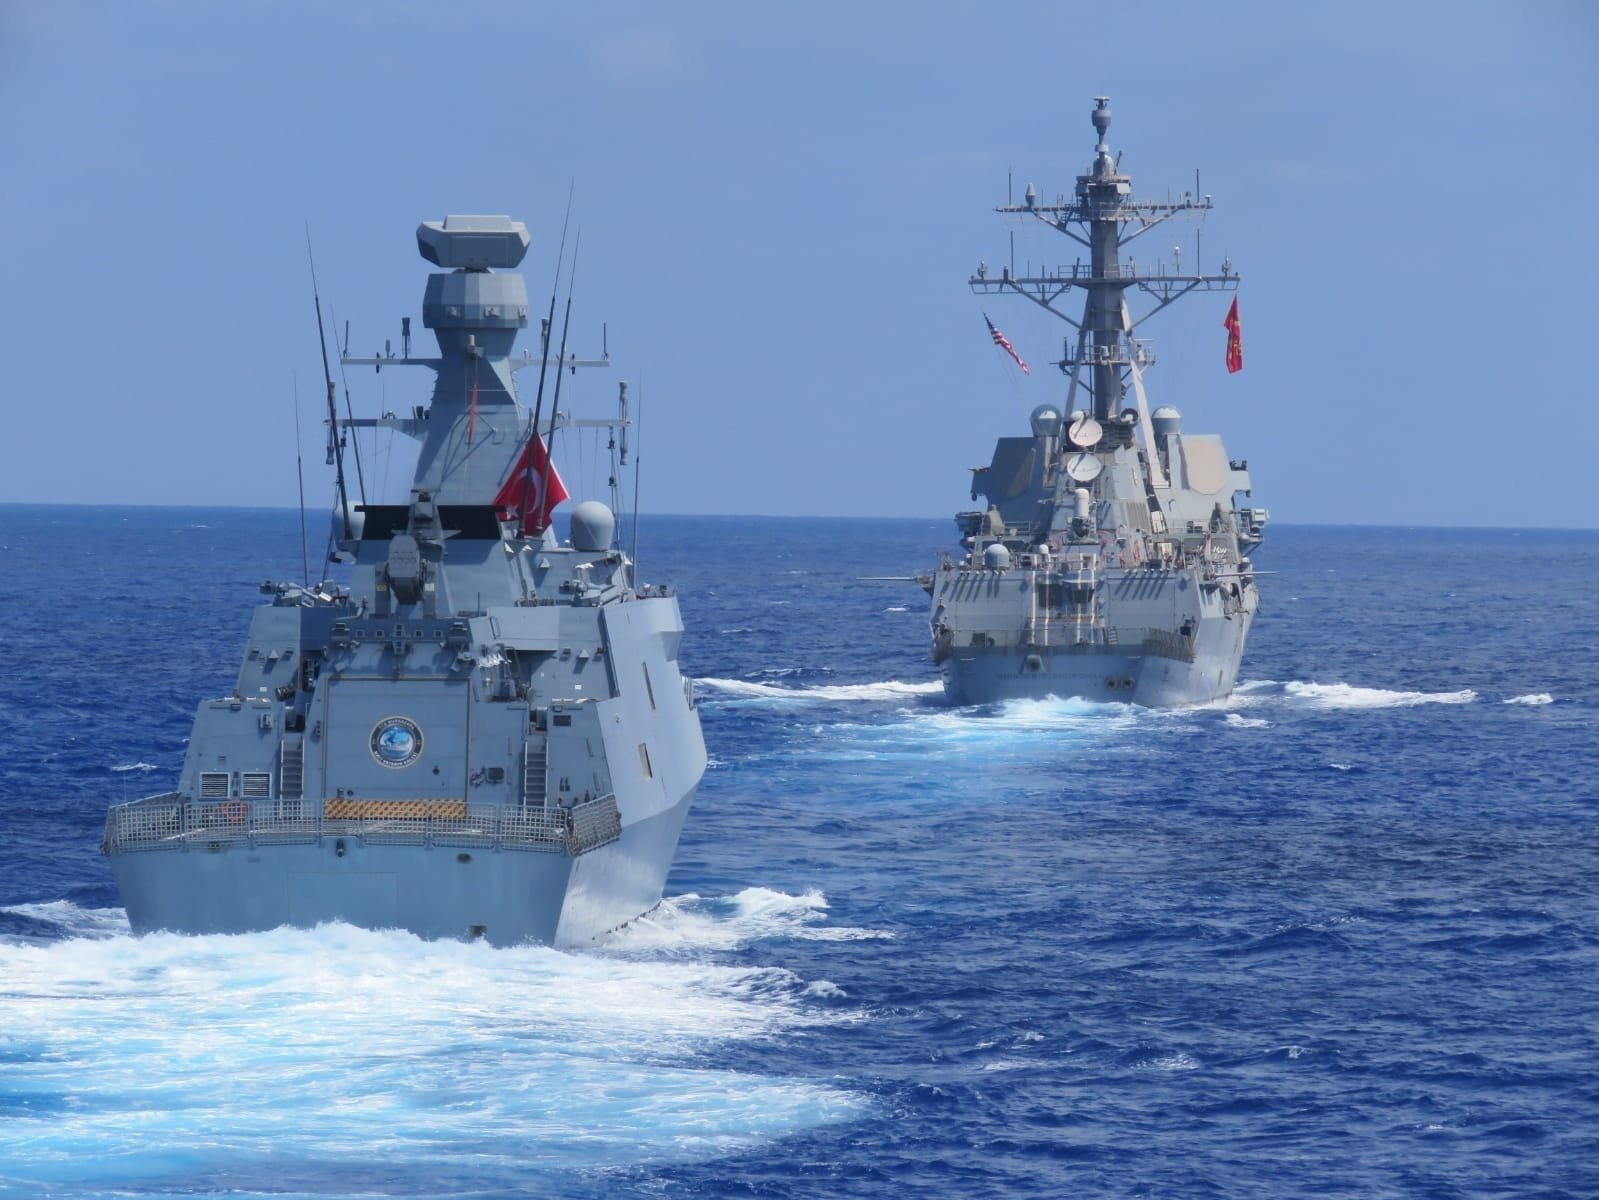 Turkish frigates TCG Barbaros and TCG Burgazada conducts maritime training with American destroyer USS Winston S. Churchill in the Eastern Mediterranean, Aug. 26, 2020. (DHA)